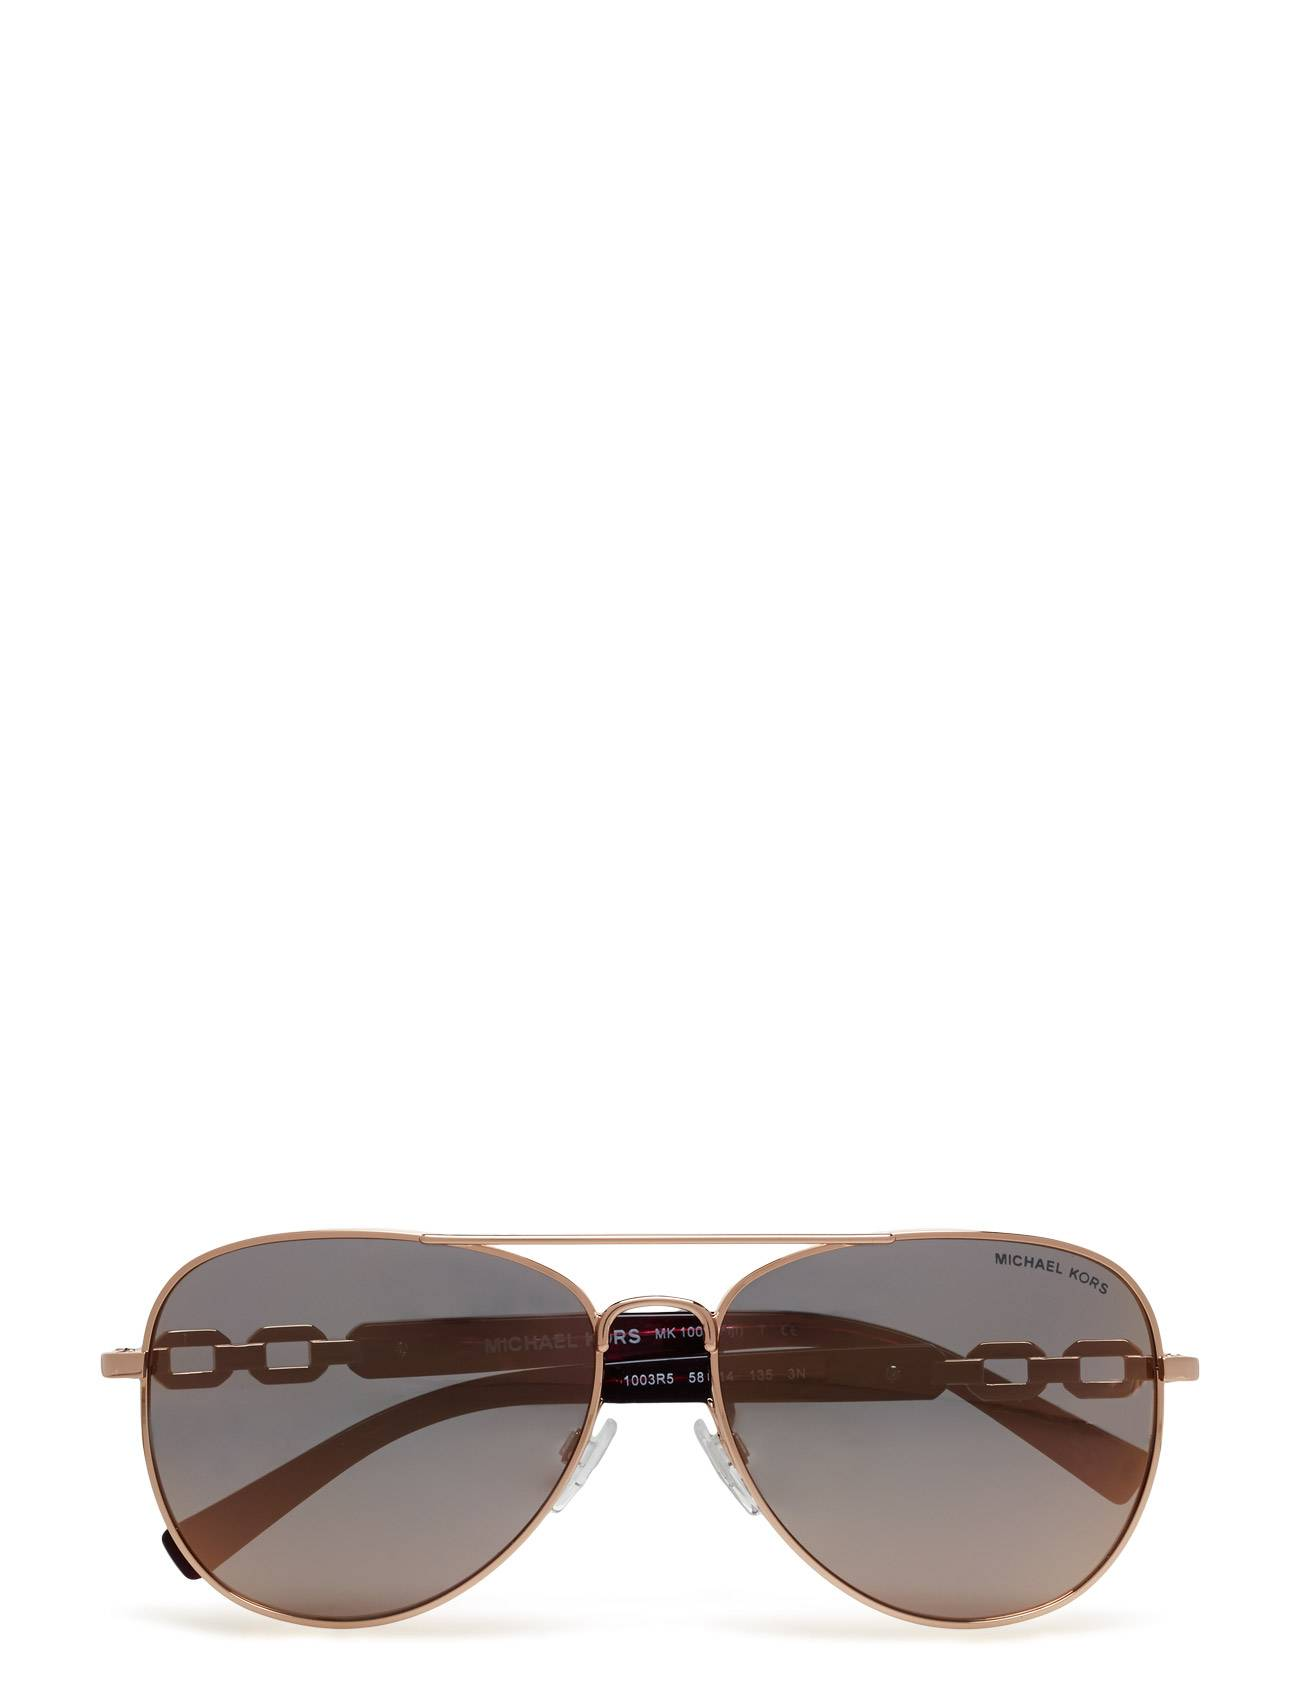 Michael Kors Sunglasses Fiji